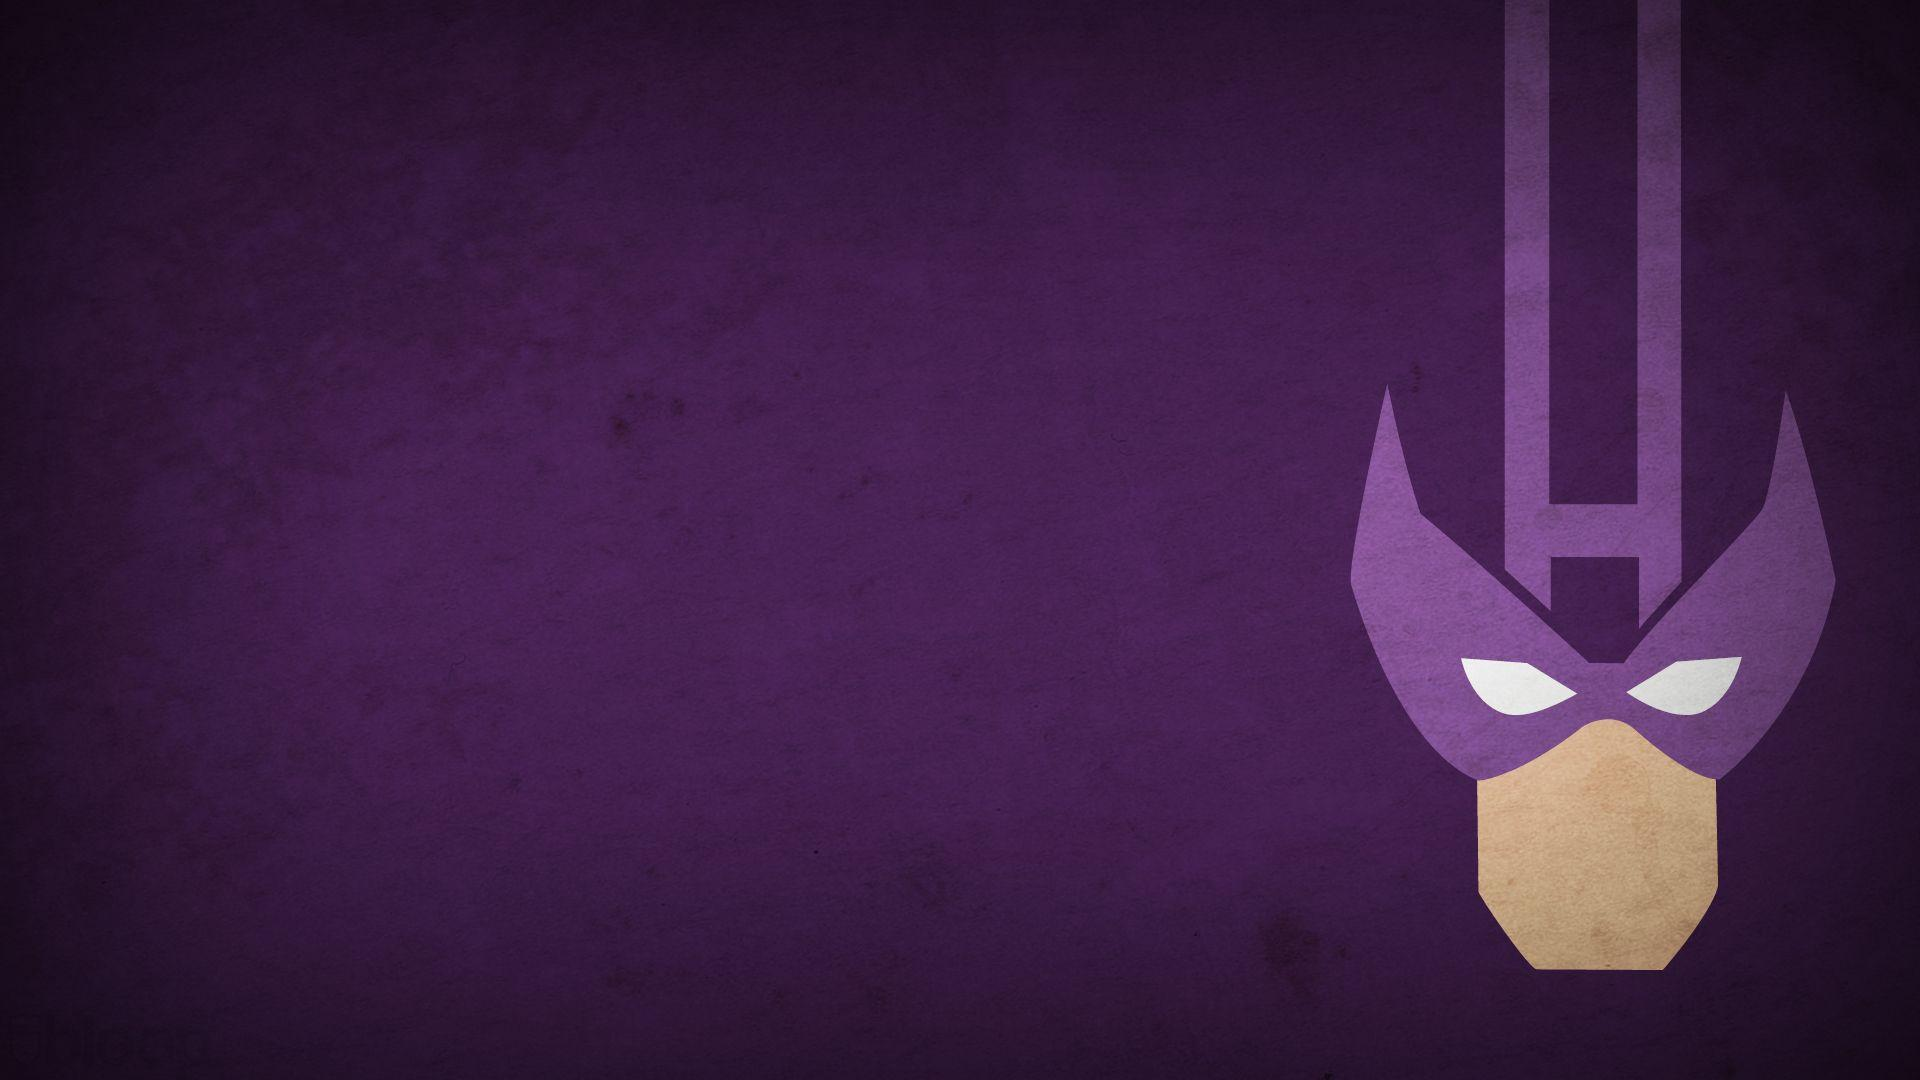 hawkeye wallpapers page - photo #44